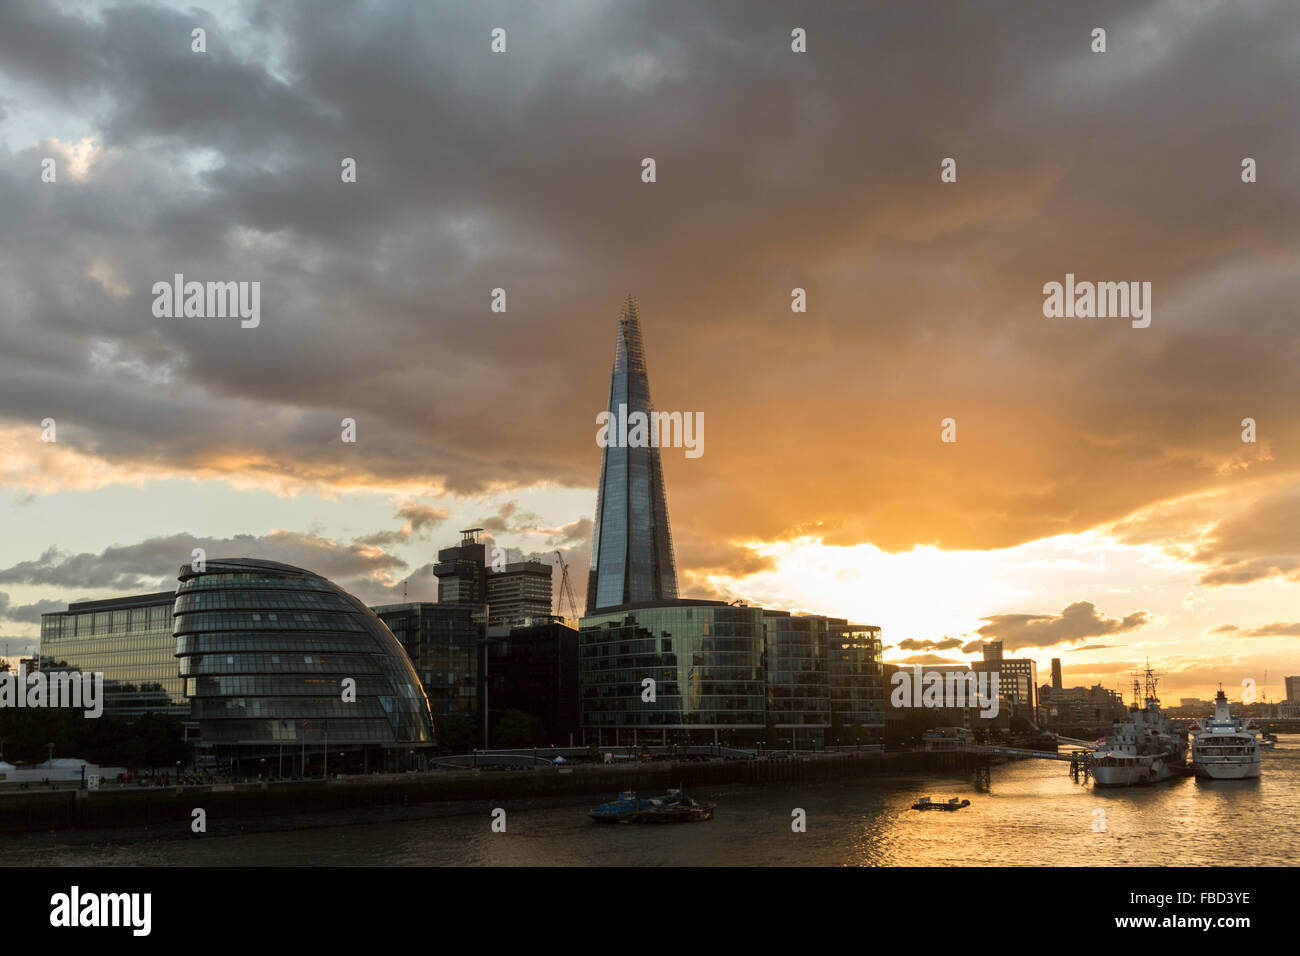 The City Hall and The Shard, London, United Kingdom - Stock Image